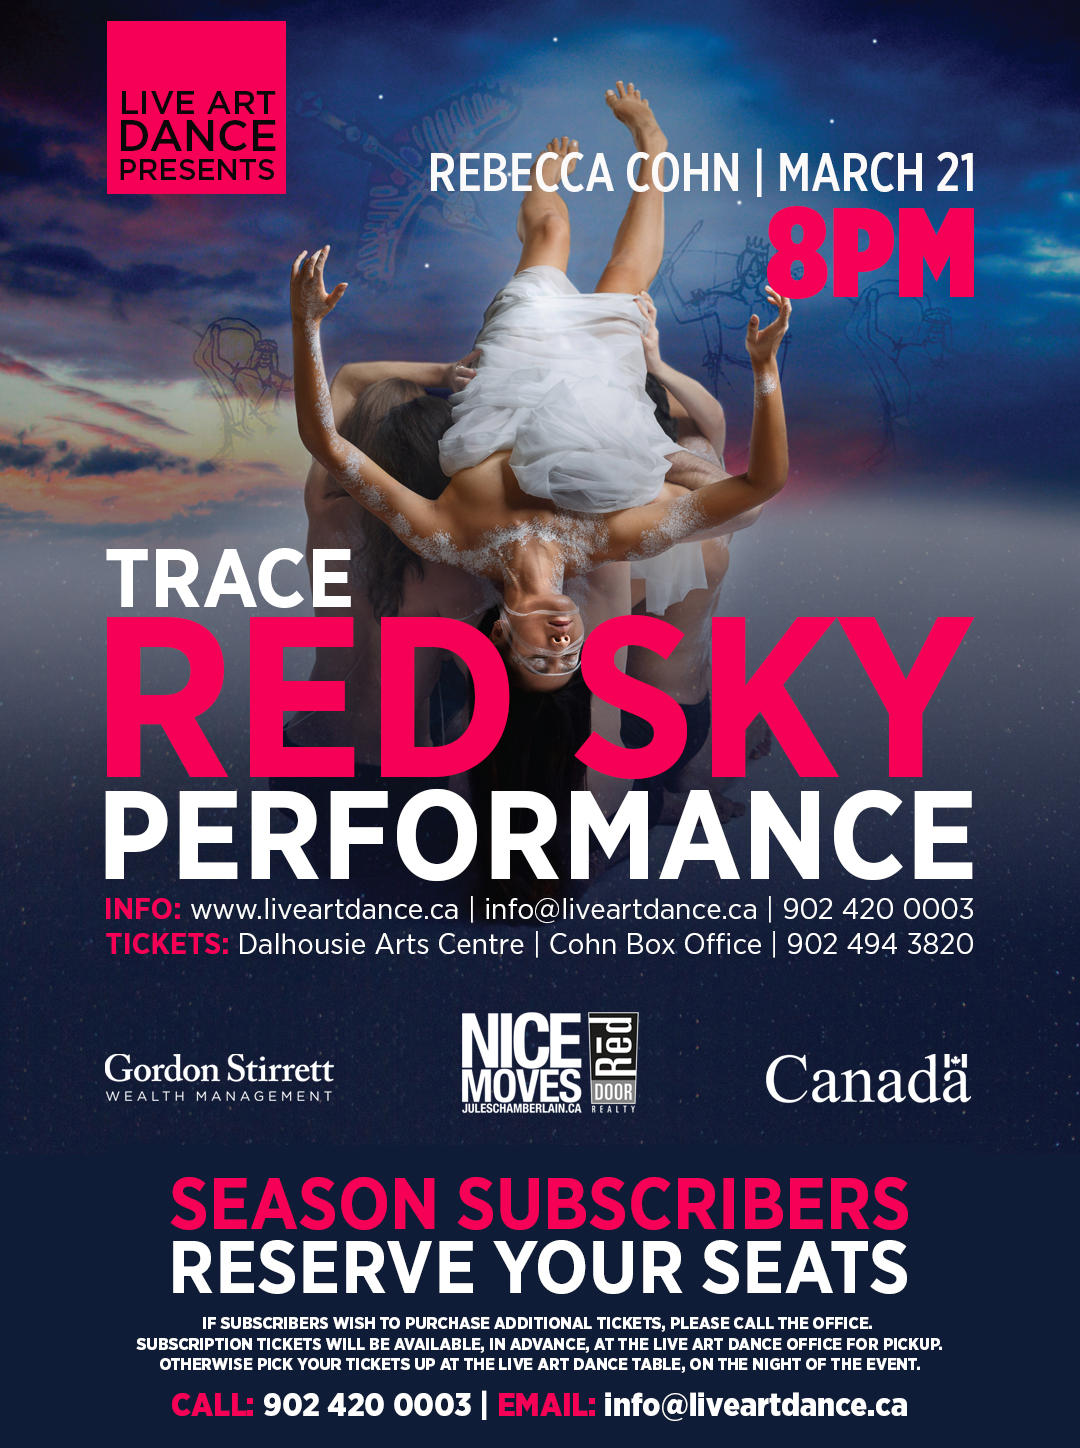 Red Sky Performance Graphic